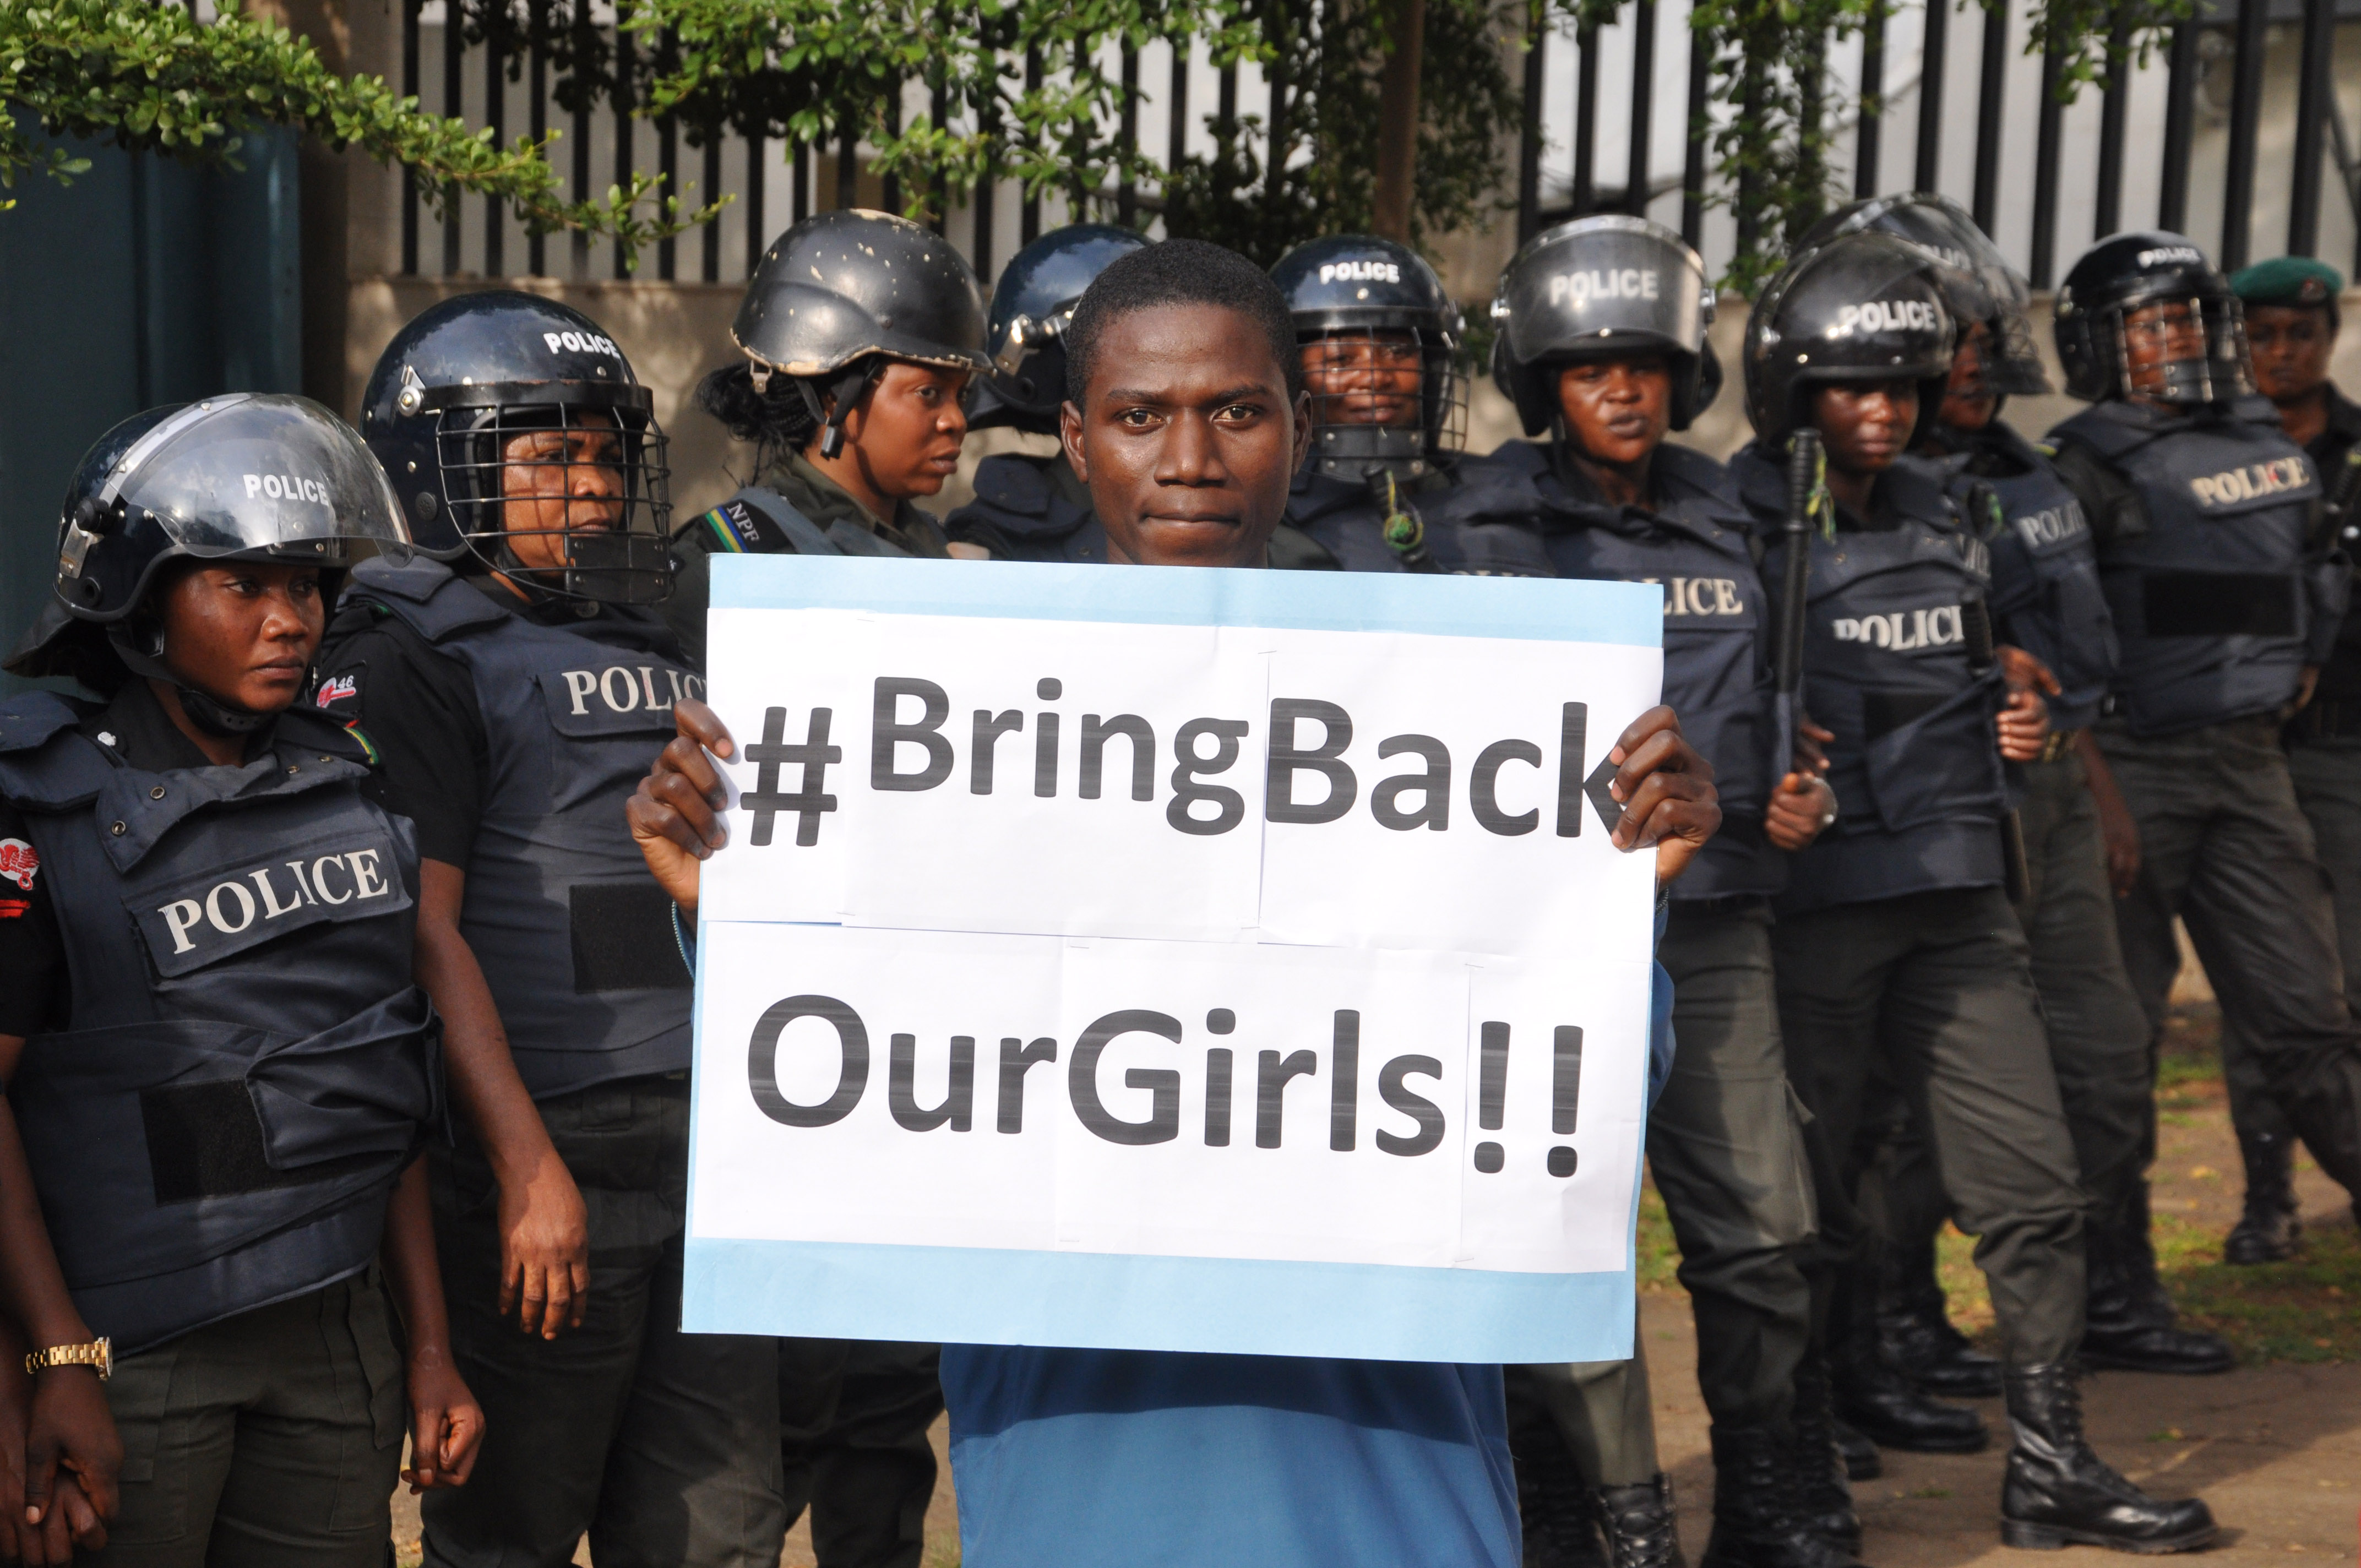 """A man poses with a sign in front of police officers in riot gear during a demonstration calling on the government to rescue the kidnapped girls of the government secondary school in Chibok, in Abuja, Nigeria, Tuesday, Oct. 14, 2014. Scores of protesters marched chanting """"Bring Back Our Girls"""" kidnapped six months ago by Boko Haram. (AP Photo/Olamikan Gbemiga)"""